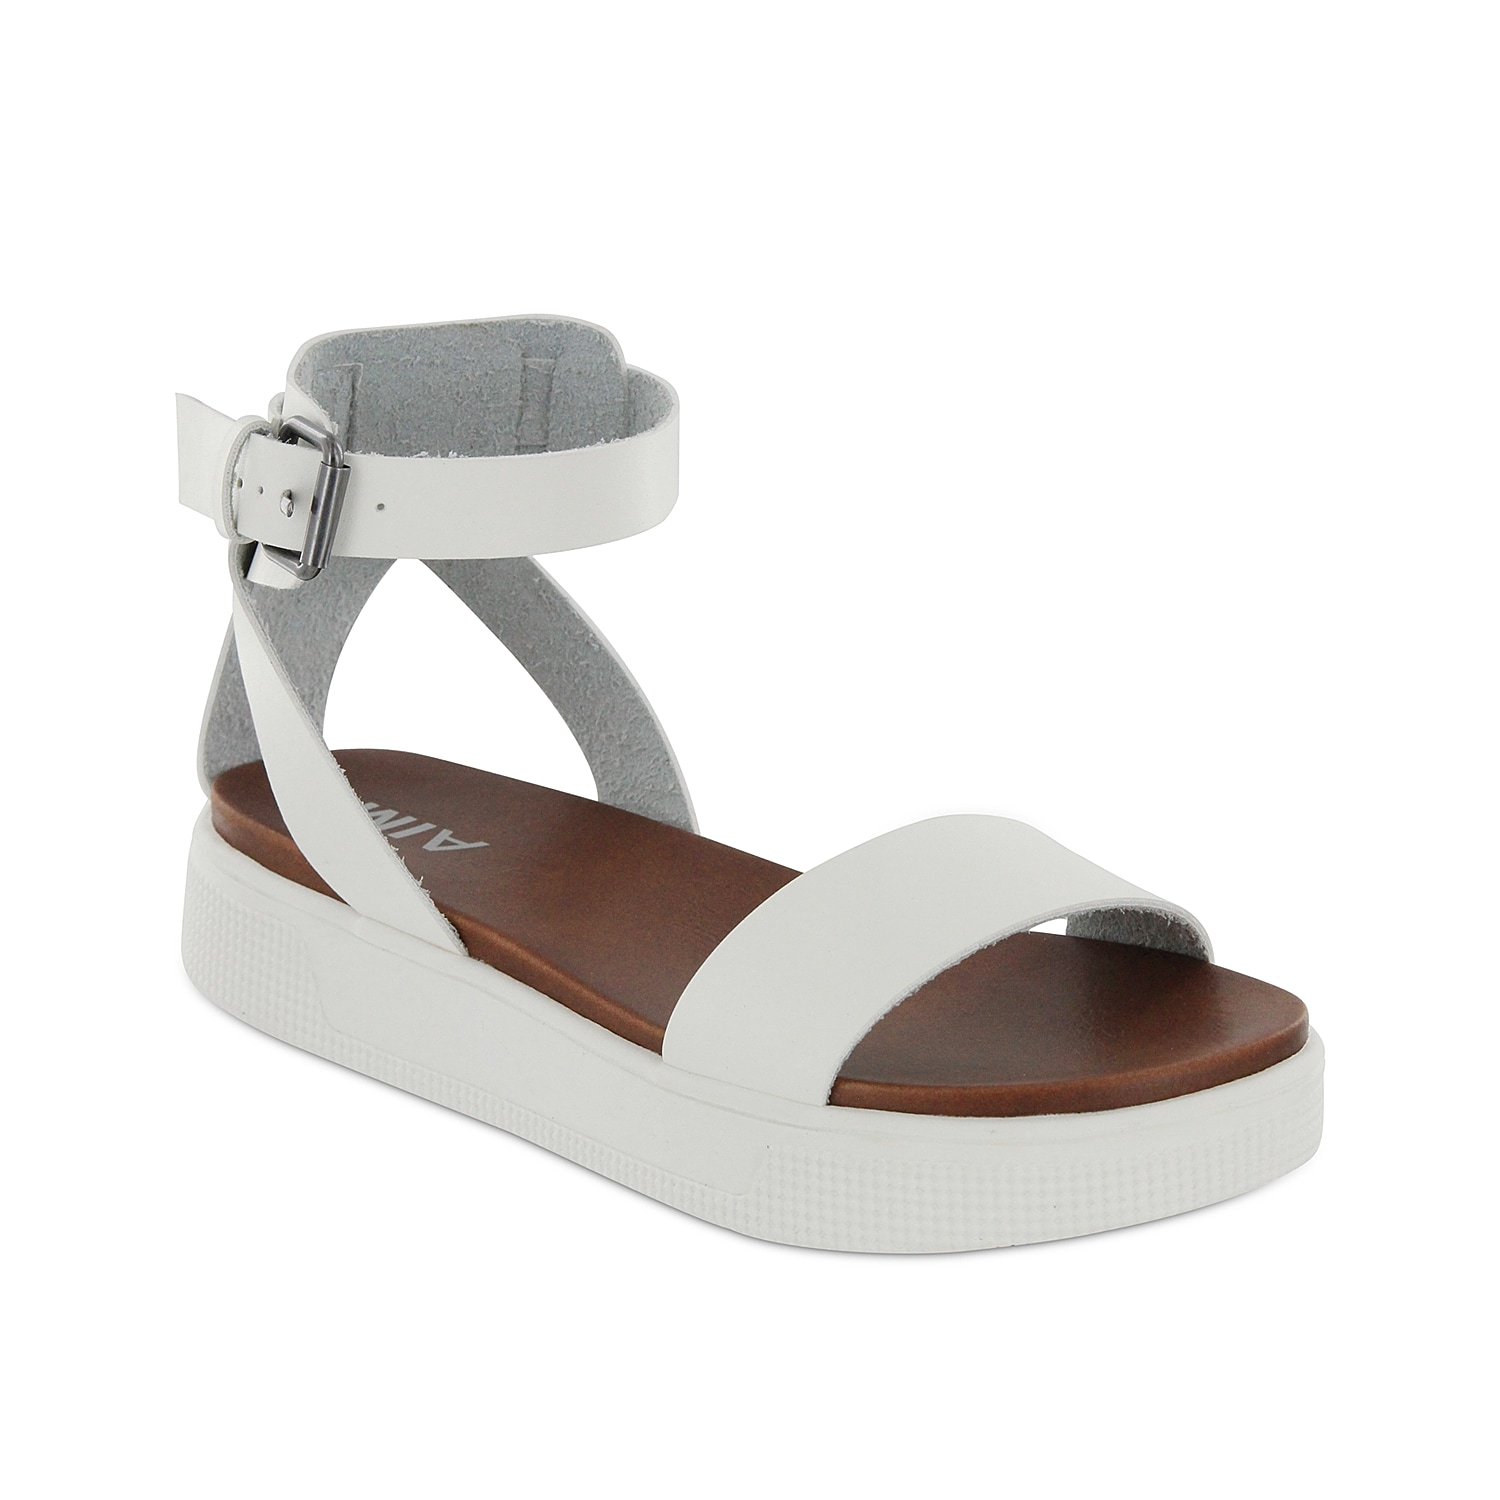 The Ellen platform sandal from Mia flaunts a sneaker-inspired midsole for sporty appeal. Pair this two-piece with your favorite dress or overalls to stay right on trend.